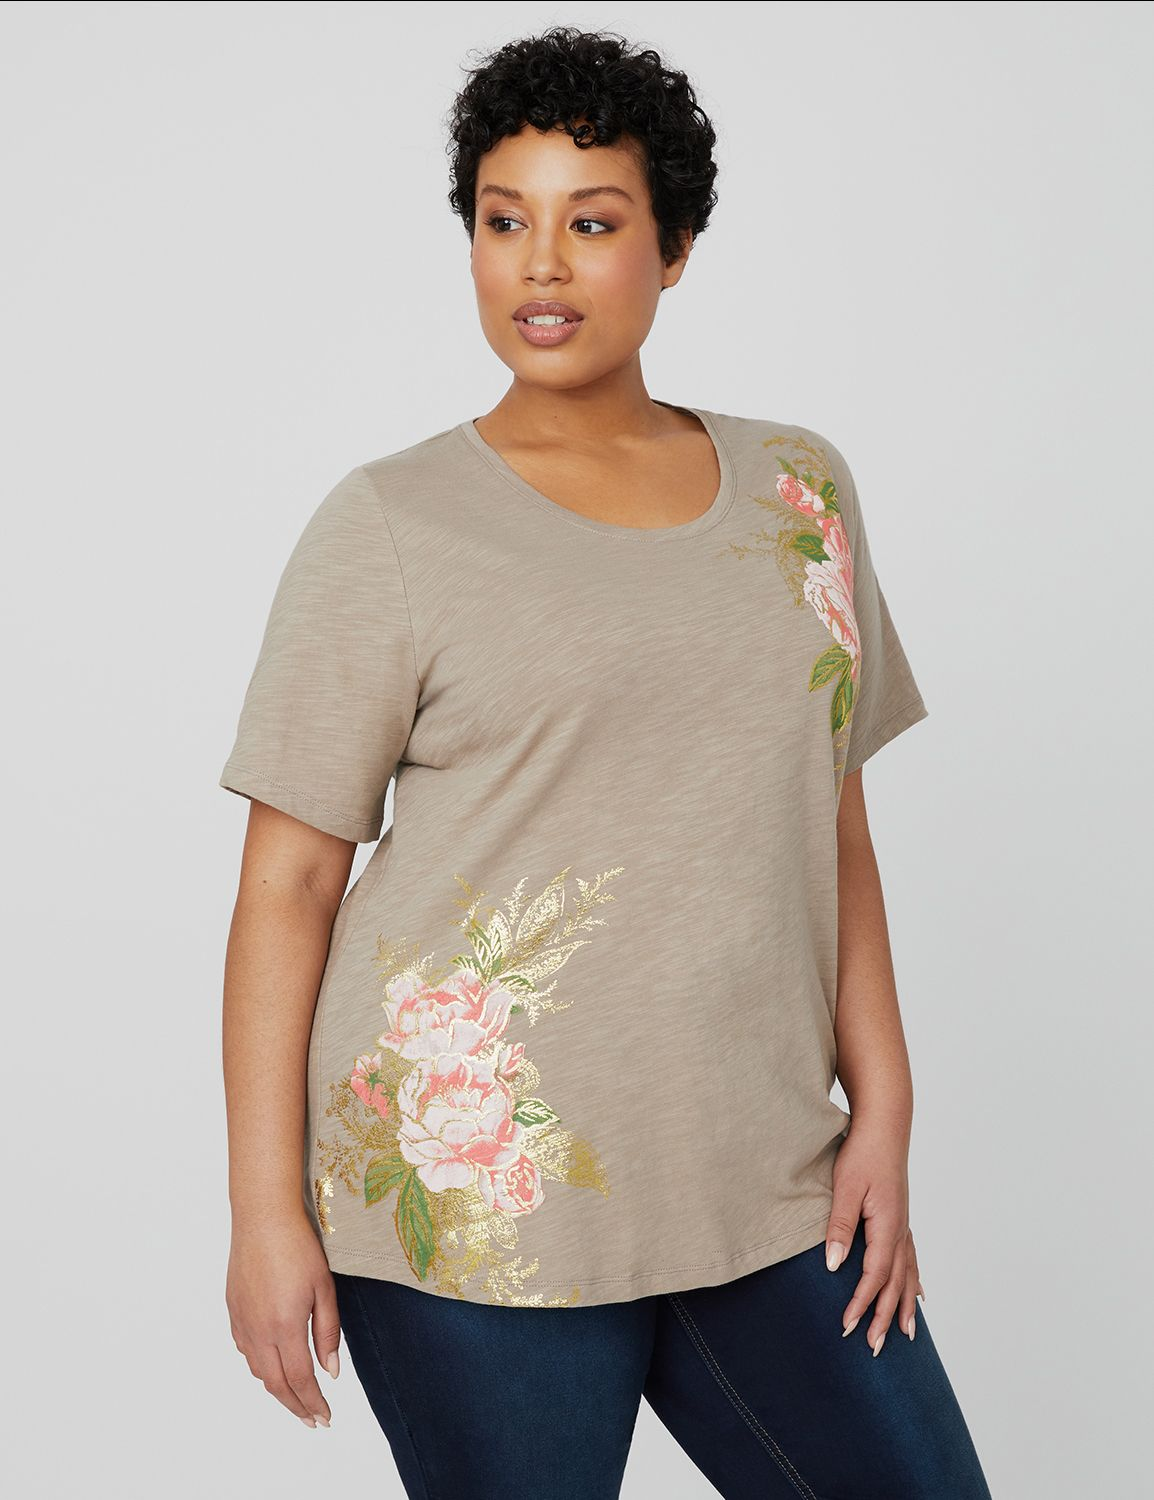 Tranquil Floral Tee 1088365 FLORAL SCREEN MP-300105276